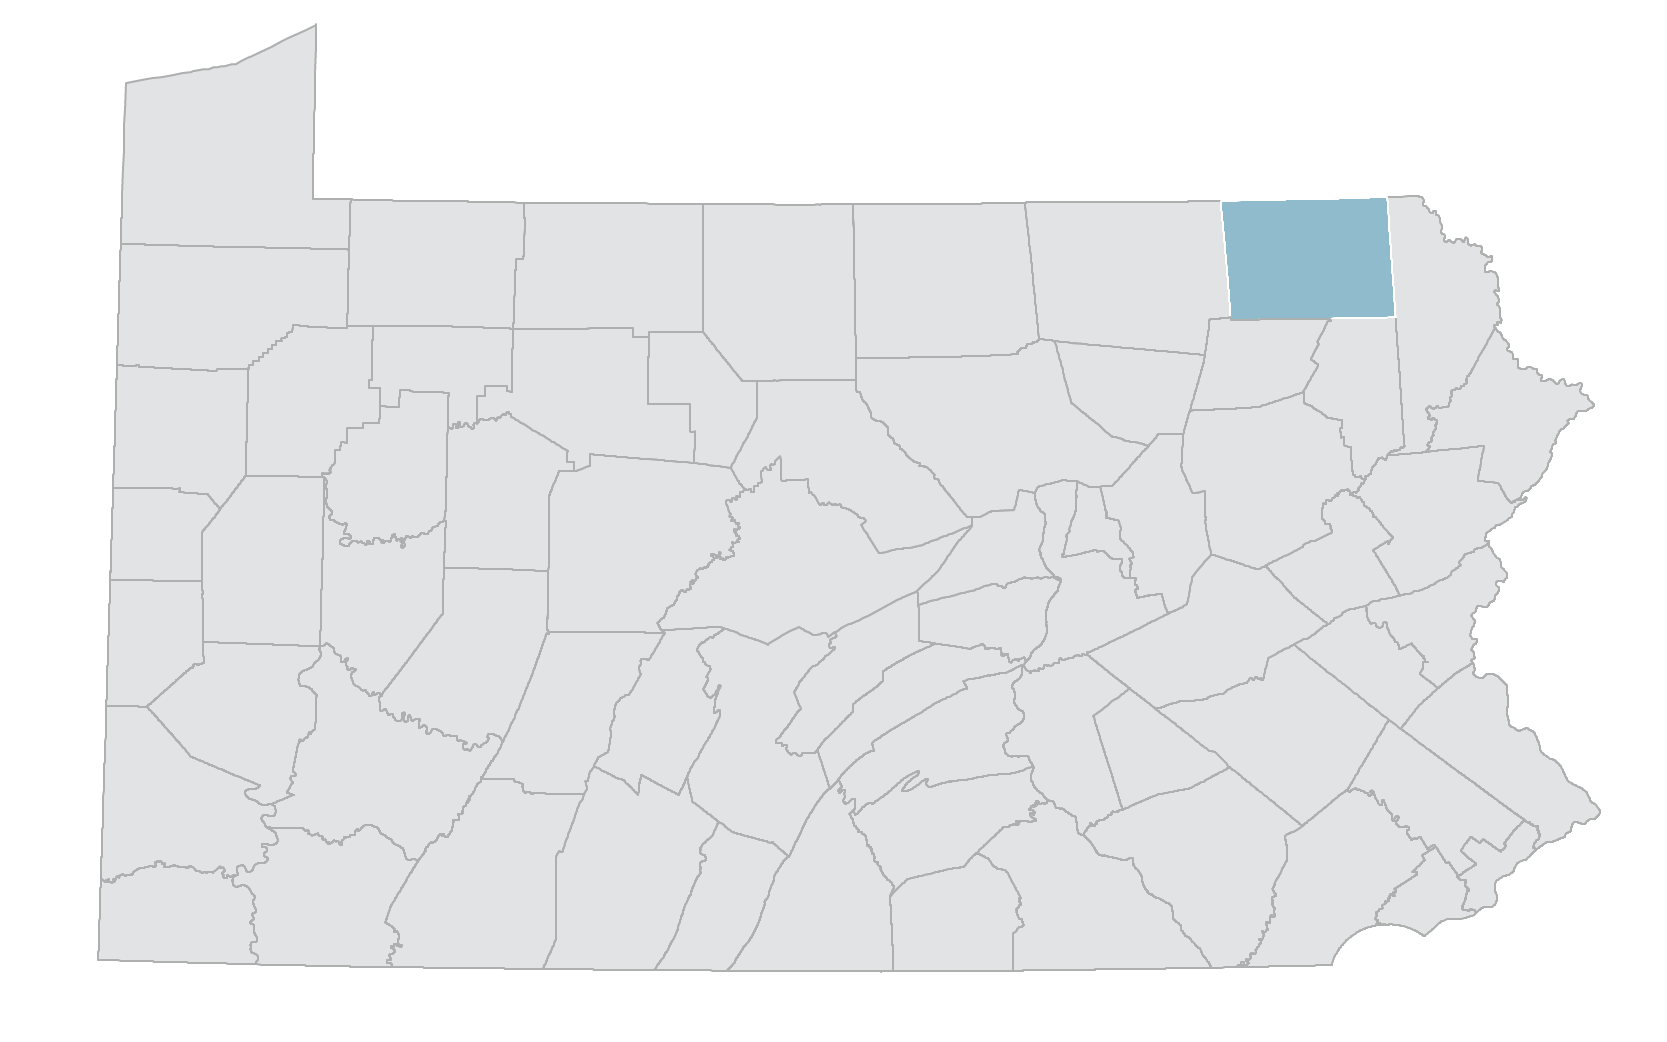 Northeast Energy Direct Project map